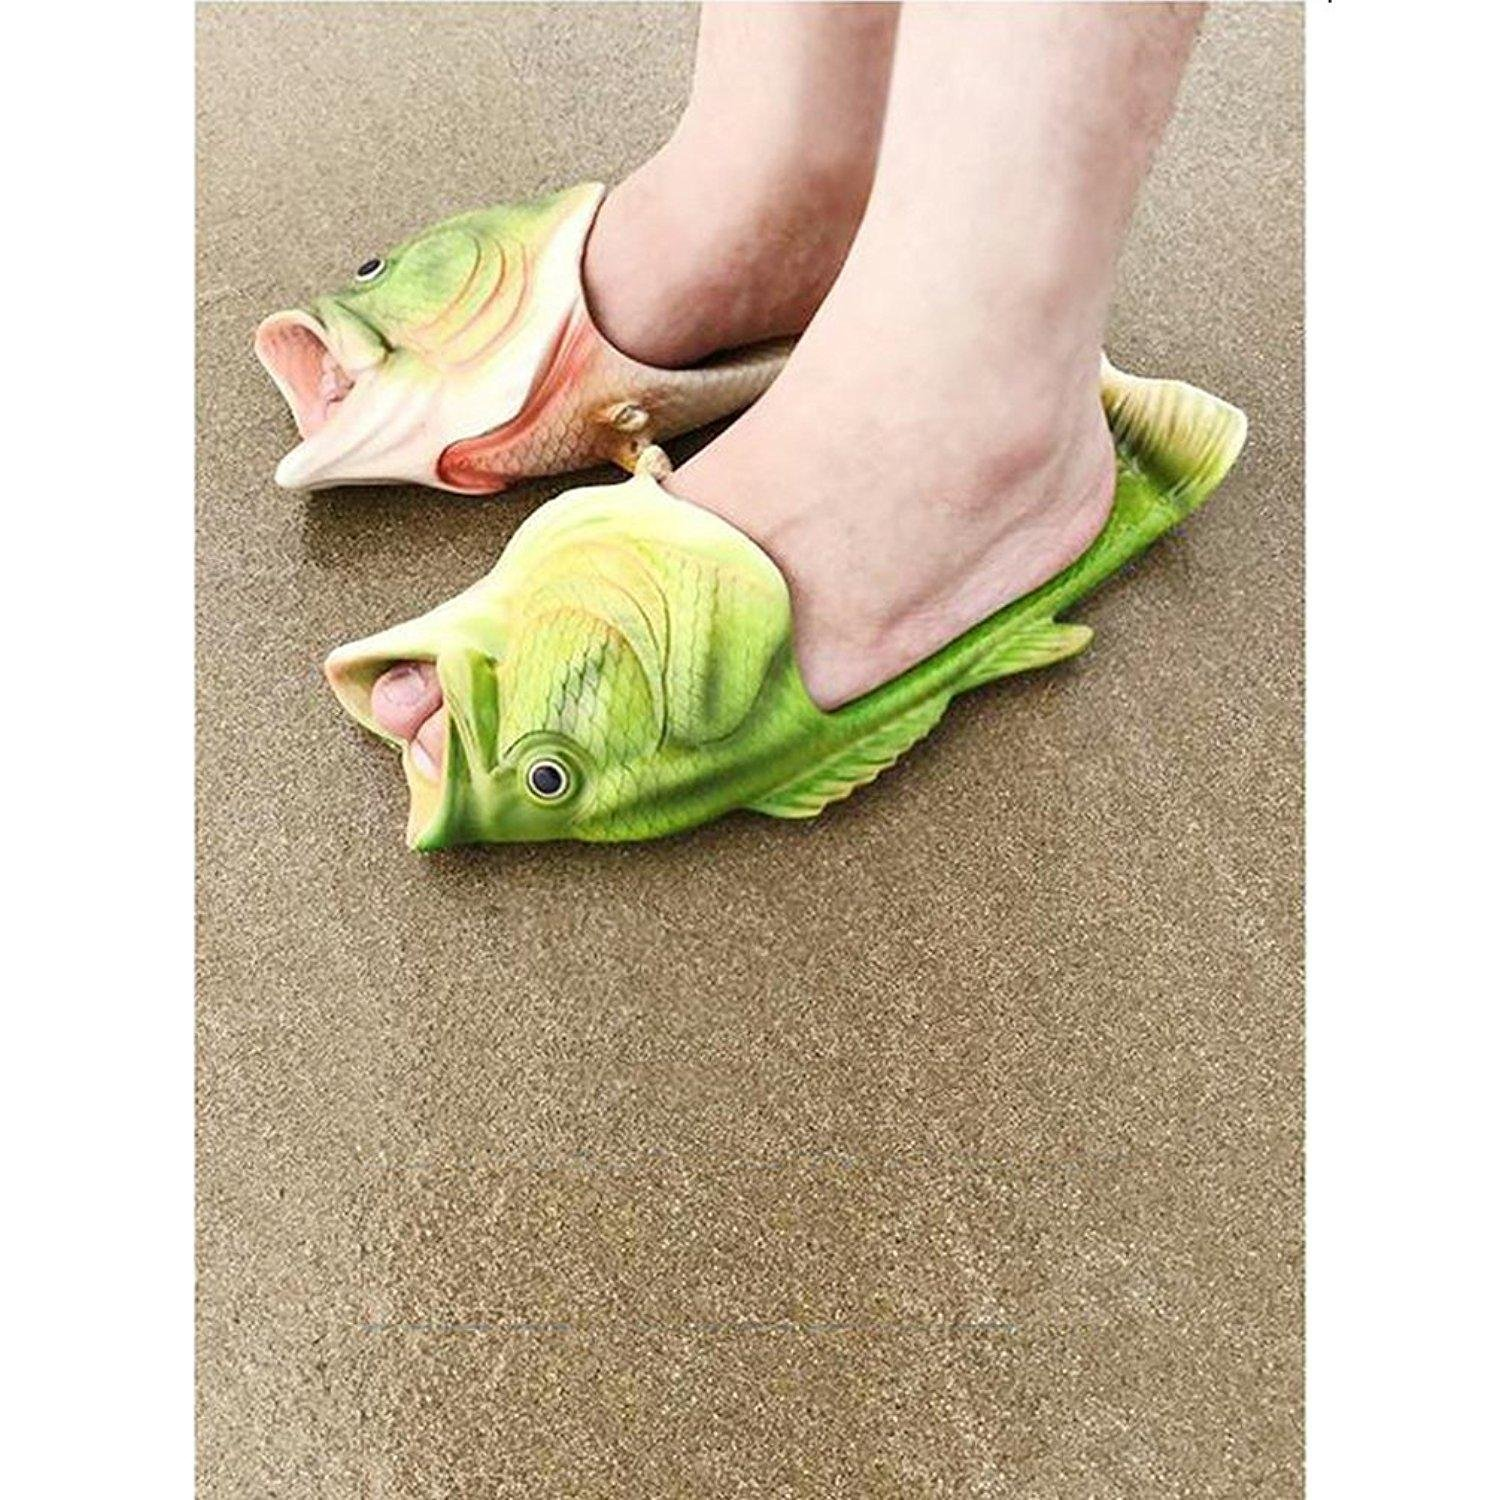 abf94b66a83023 MAXGOODS Ladies Summer Flip Flop Beach Shoes Pool Sandals Shoes Slippers Men  and Women Casual Fish Animal Shoes 35 US 4.5 Female  Amazon.co.uk  Shoes    Bags